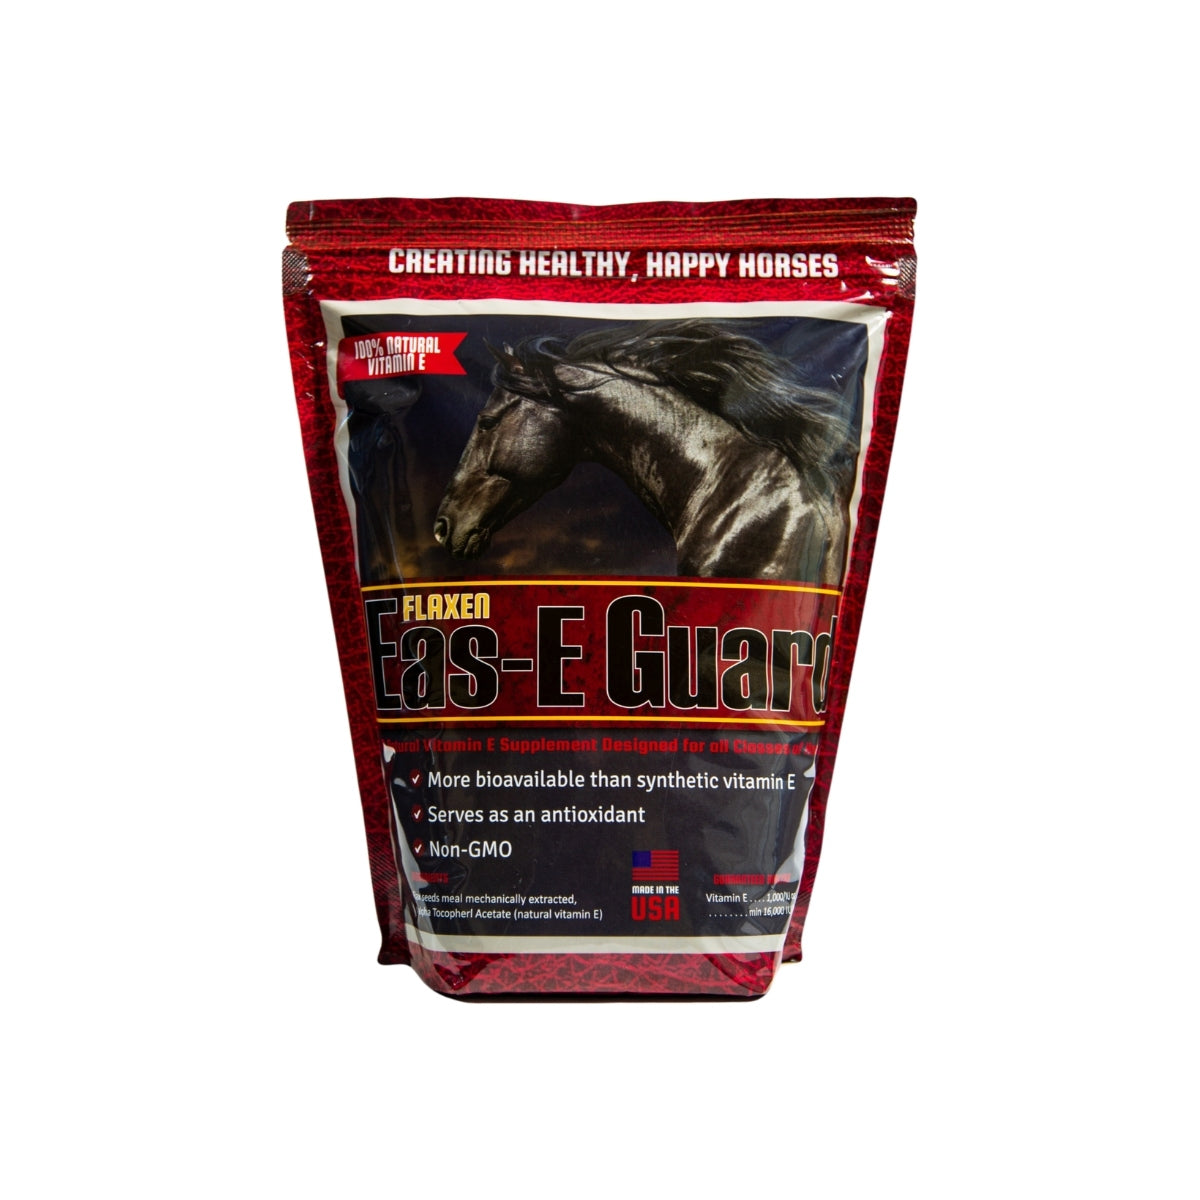 Flaxen Eas-E Guard 5lb Front Supplement by Horse Guard